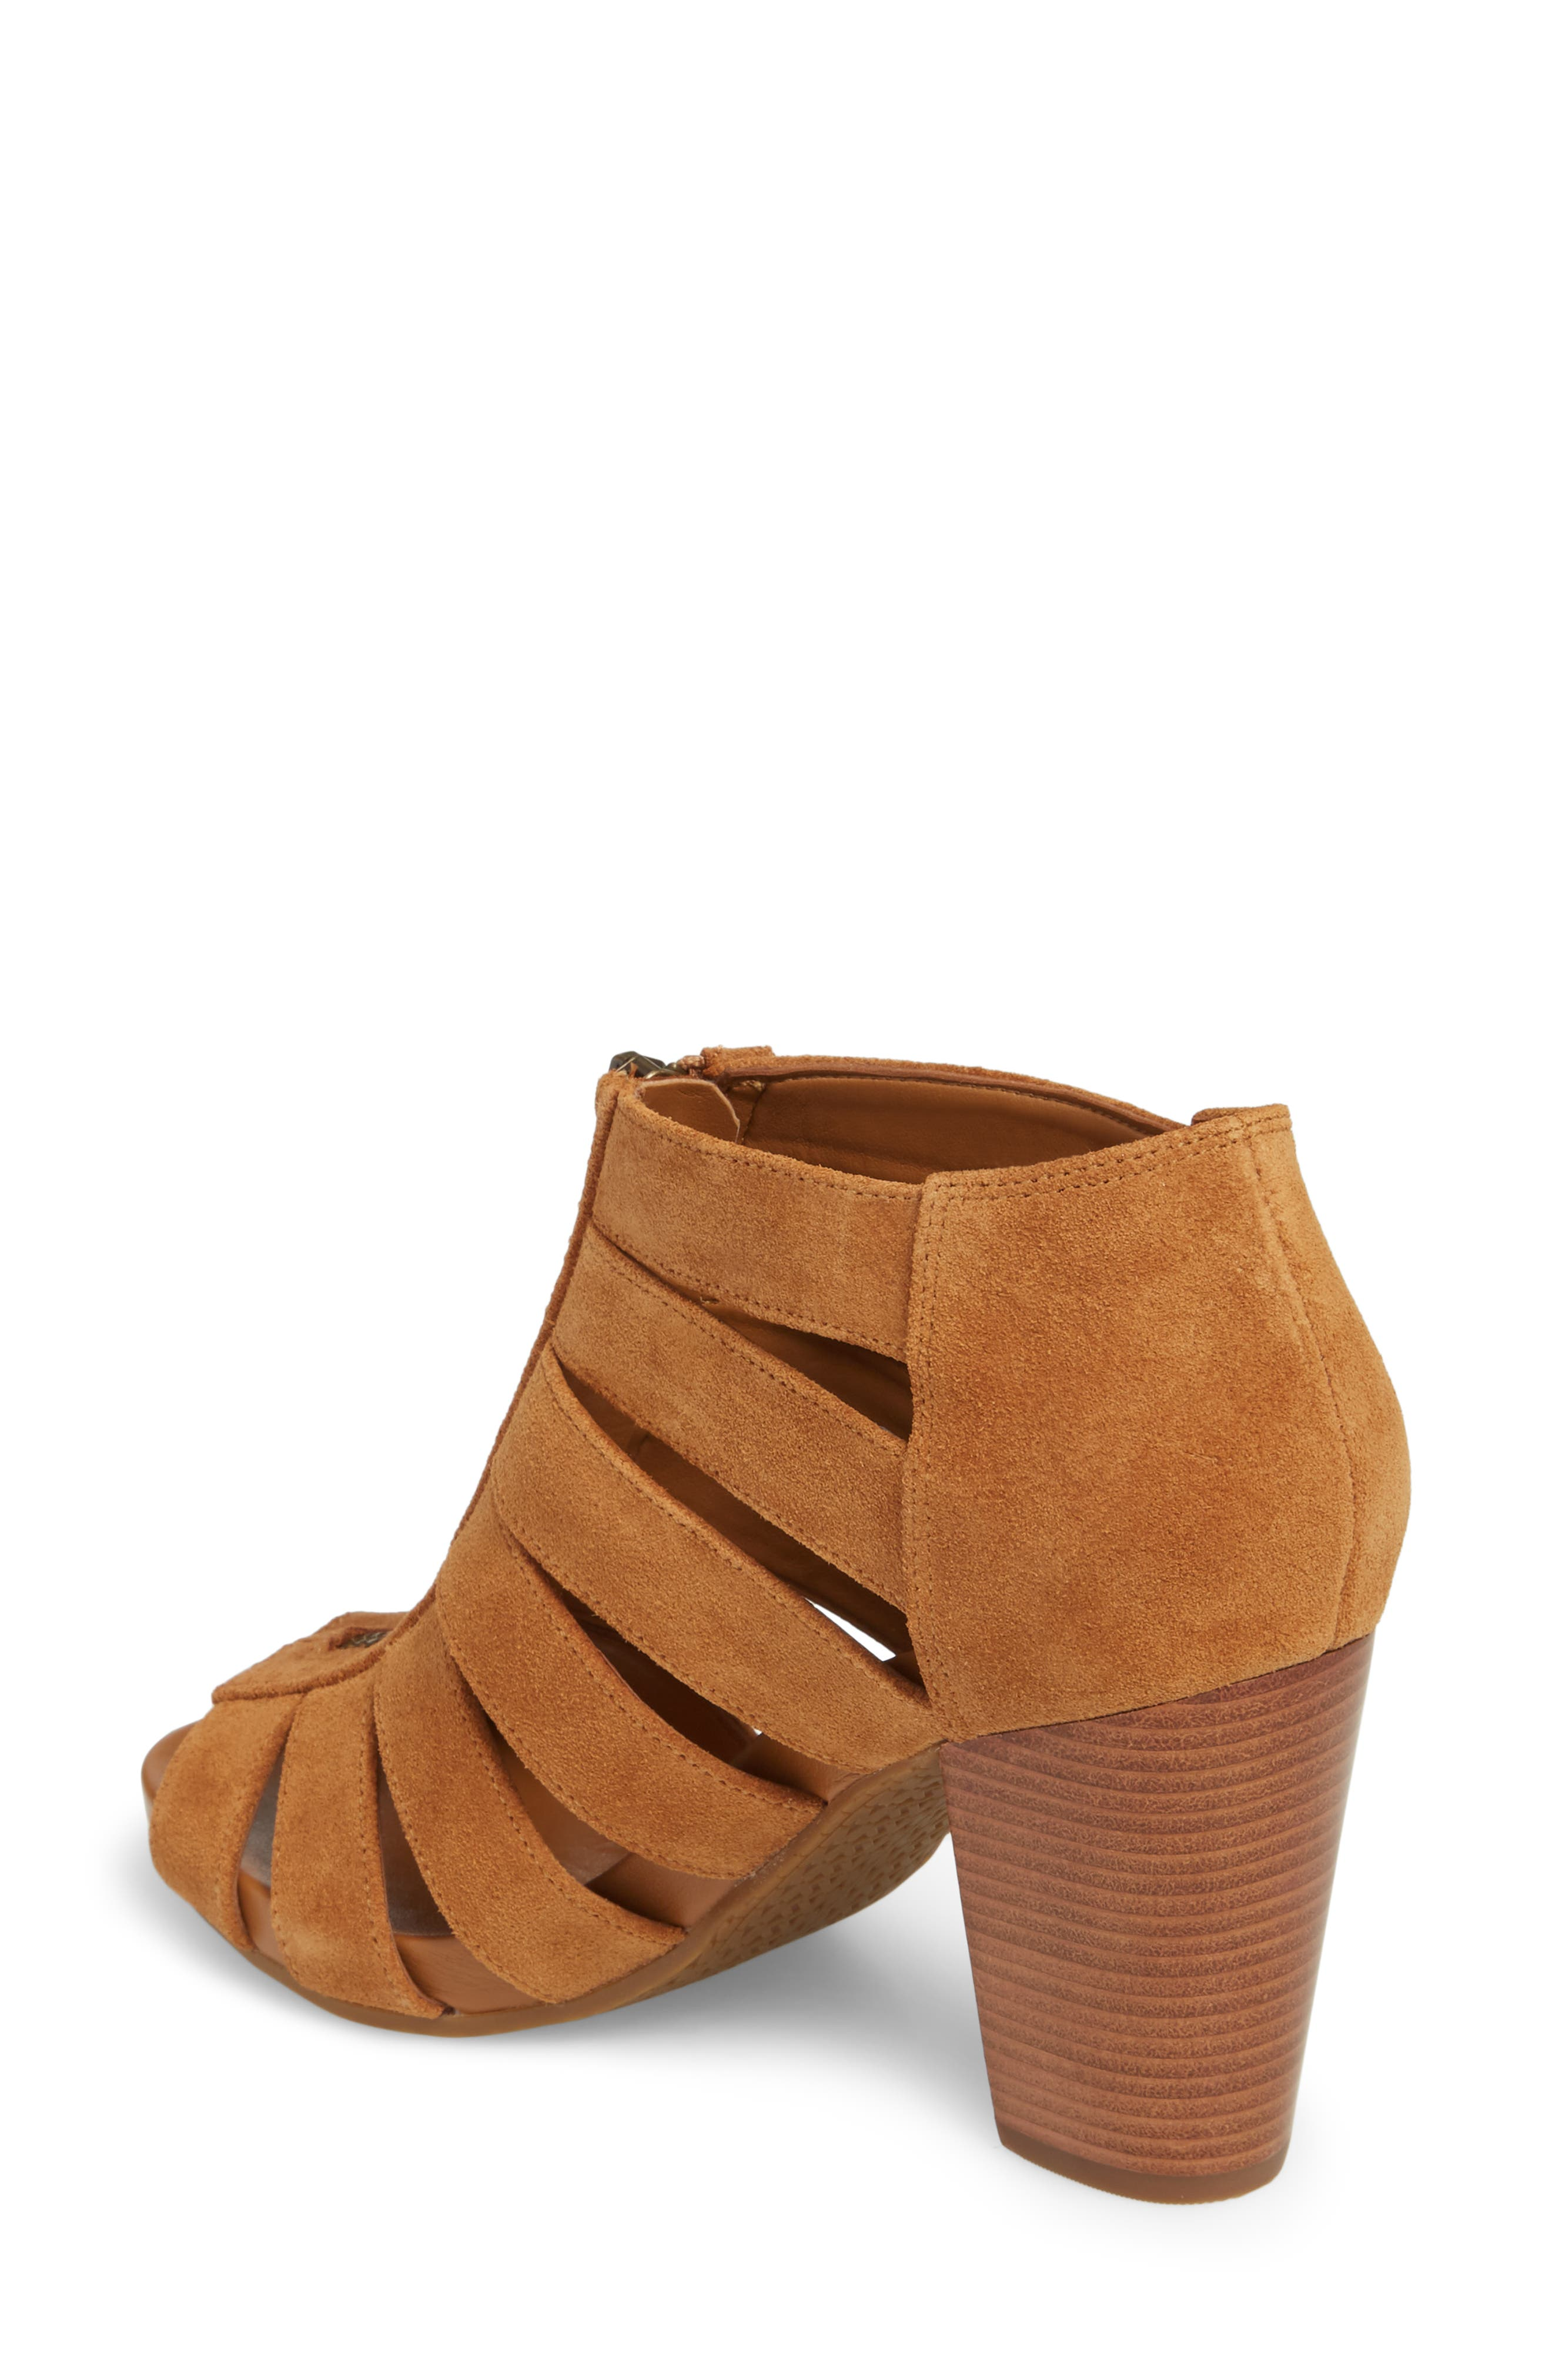 Sherry Cage Bootie,                             Alternate thumbnail 2, color,                             Acorn Suede